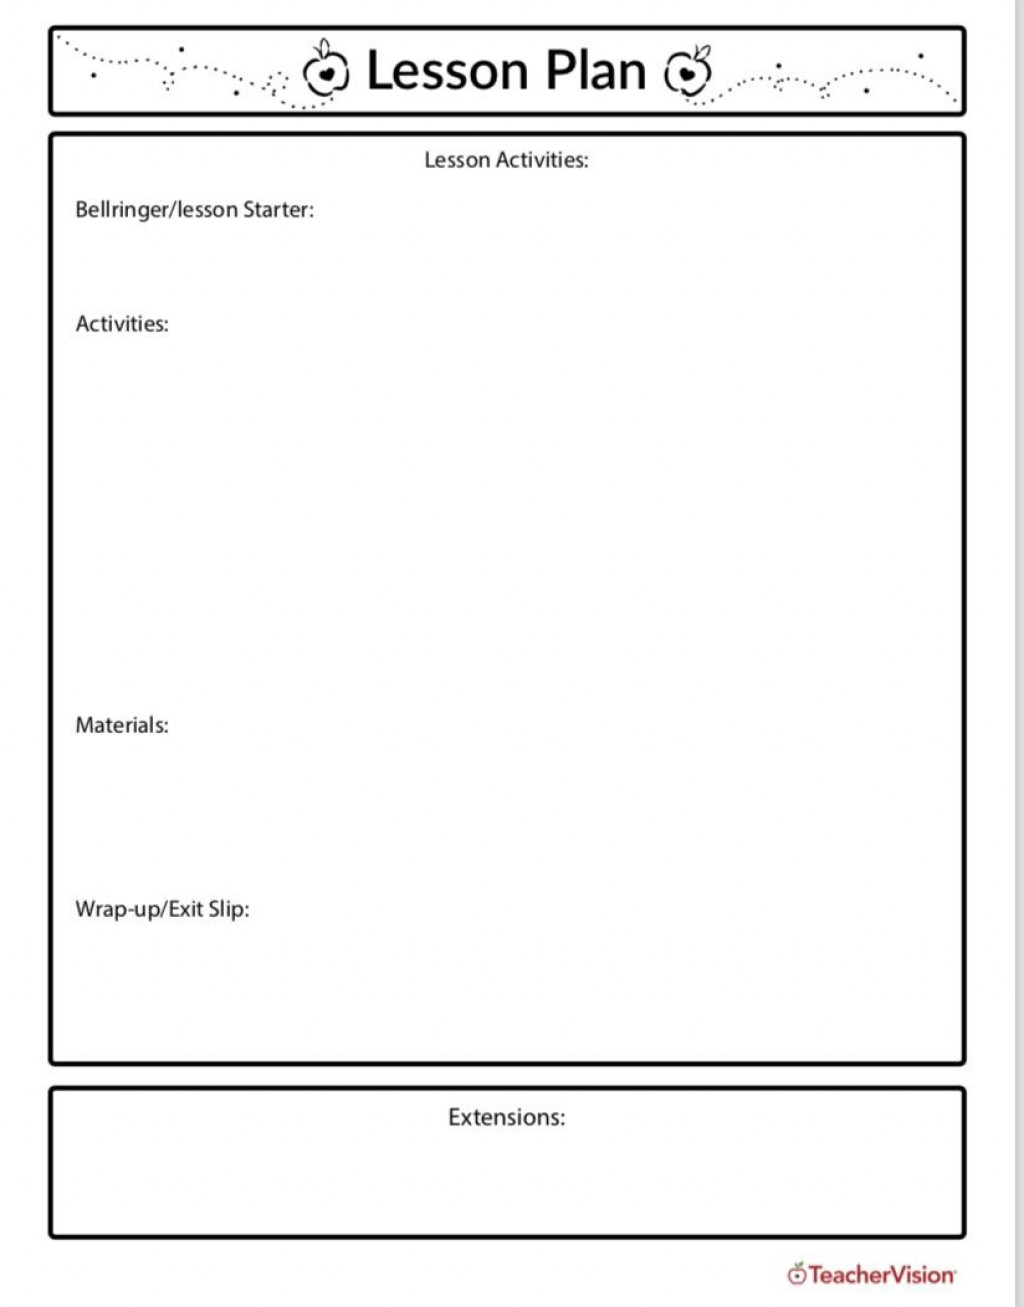 005 Simple Editable Lesson Plan Template Elementary Idea Large